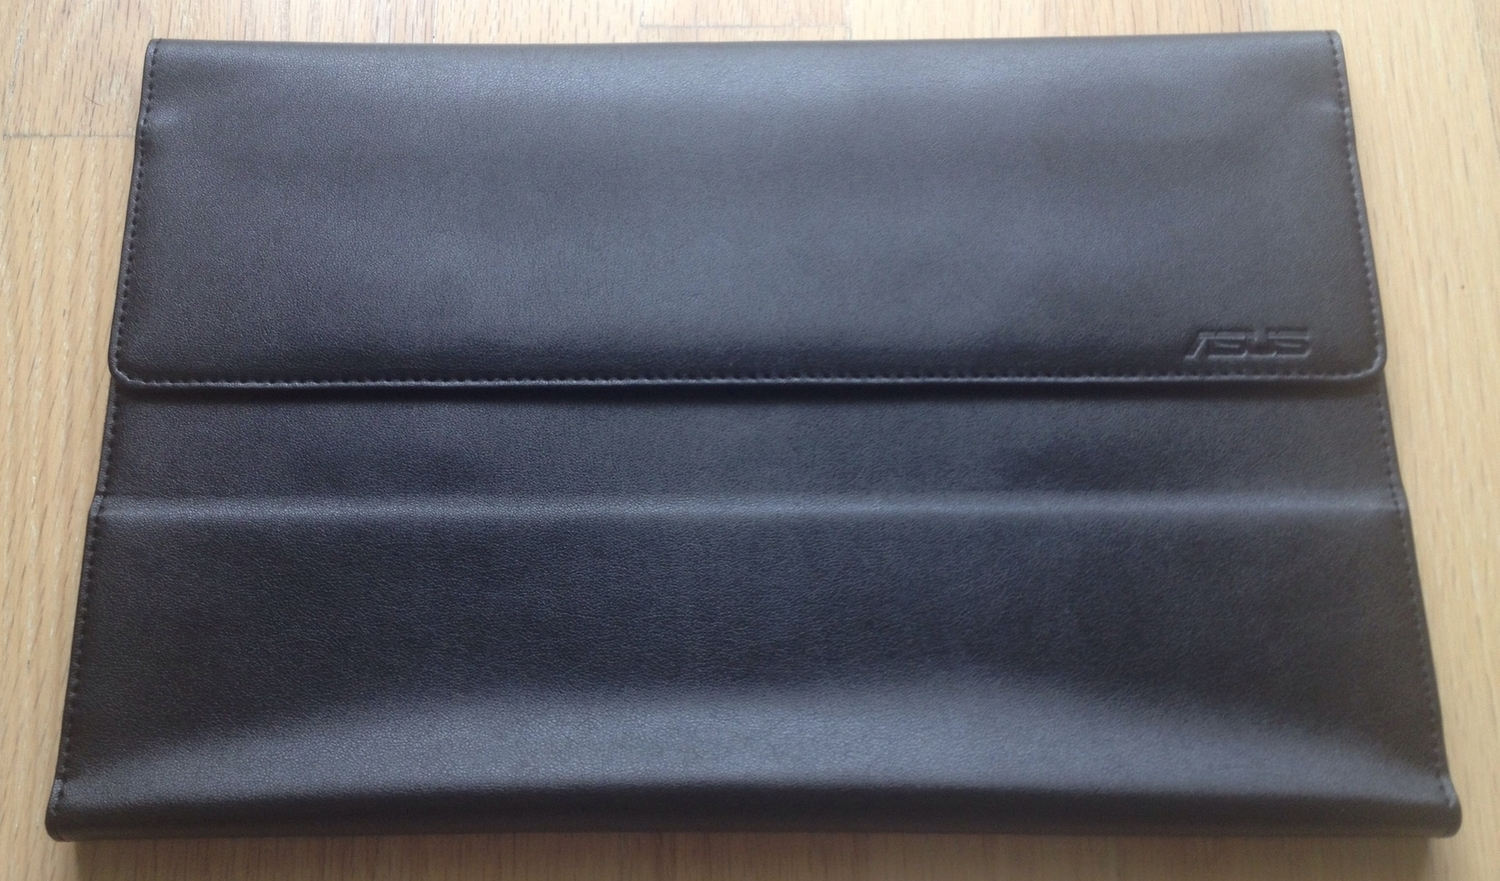 The sleeve will definitely keep your tablet out of harm's way. It includes a pen holder too.